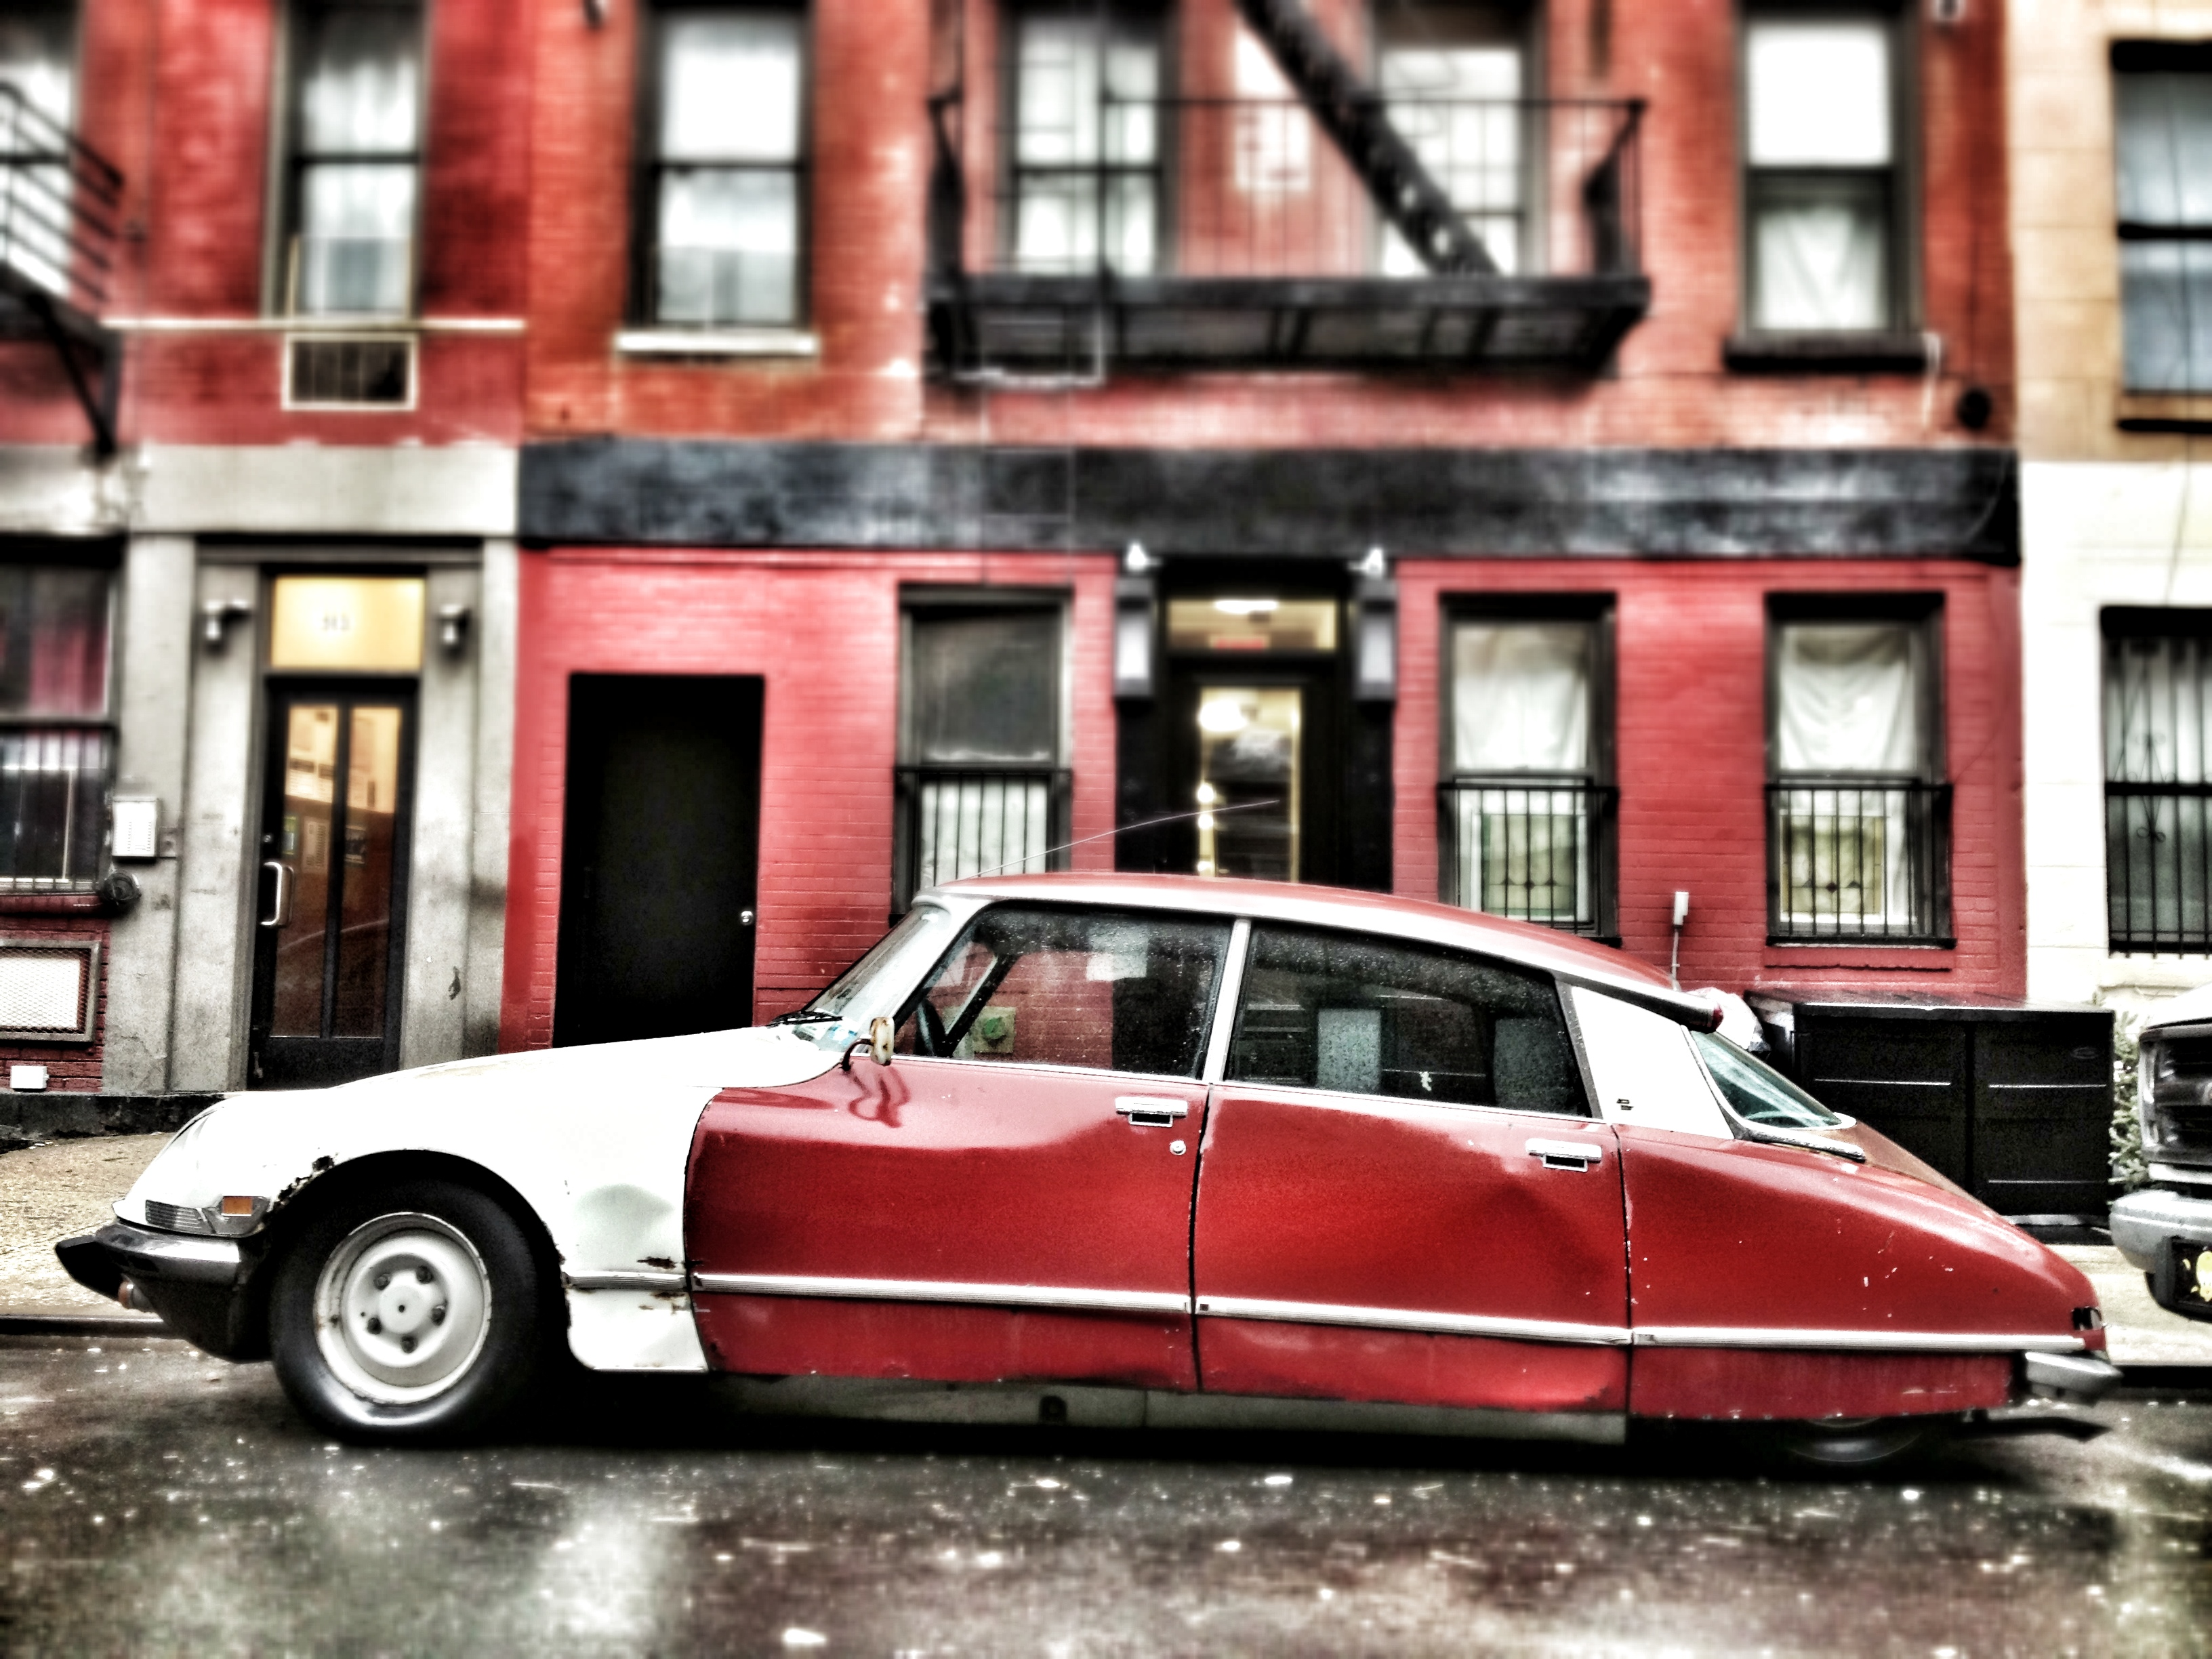 1972, citroen ds, citroen, fish out of water, east fith street, east village